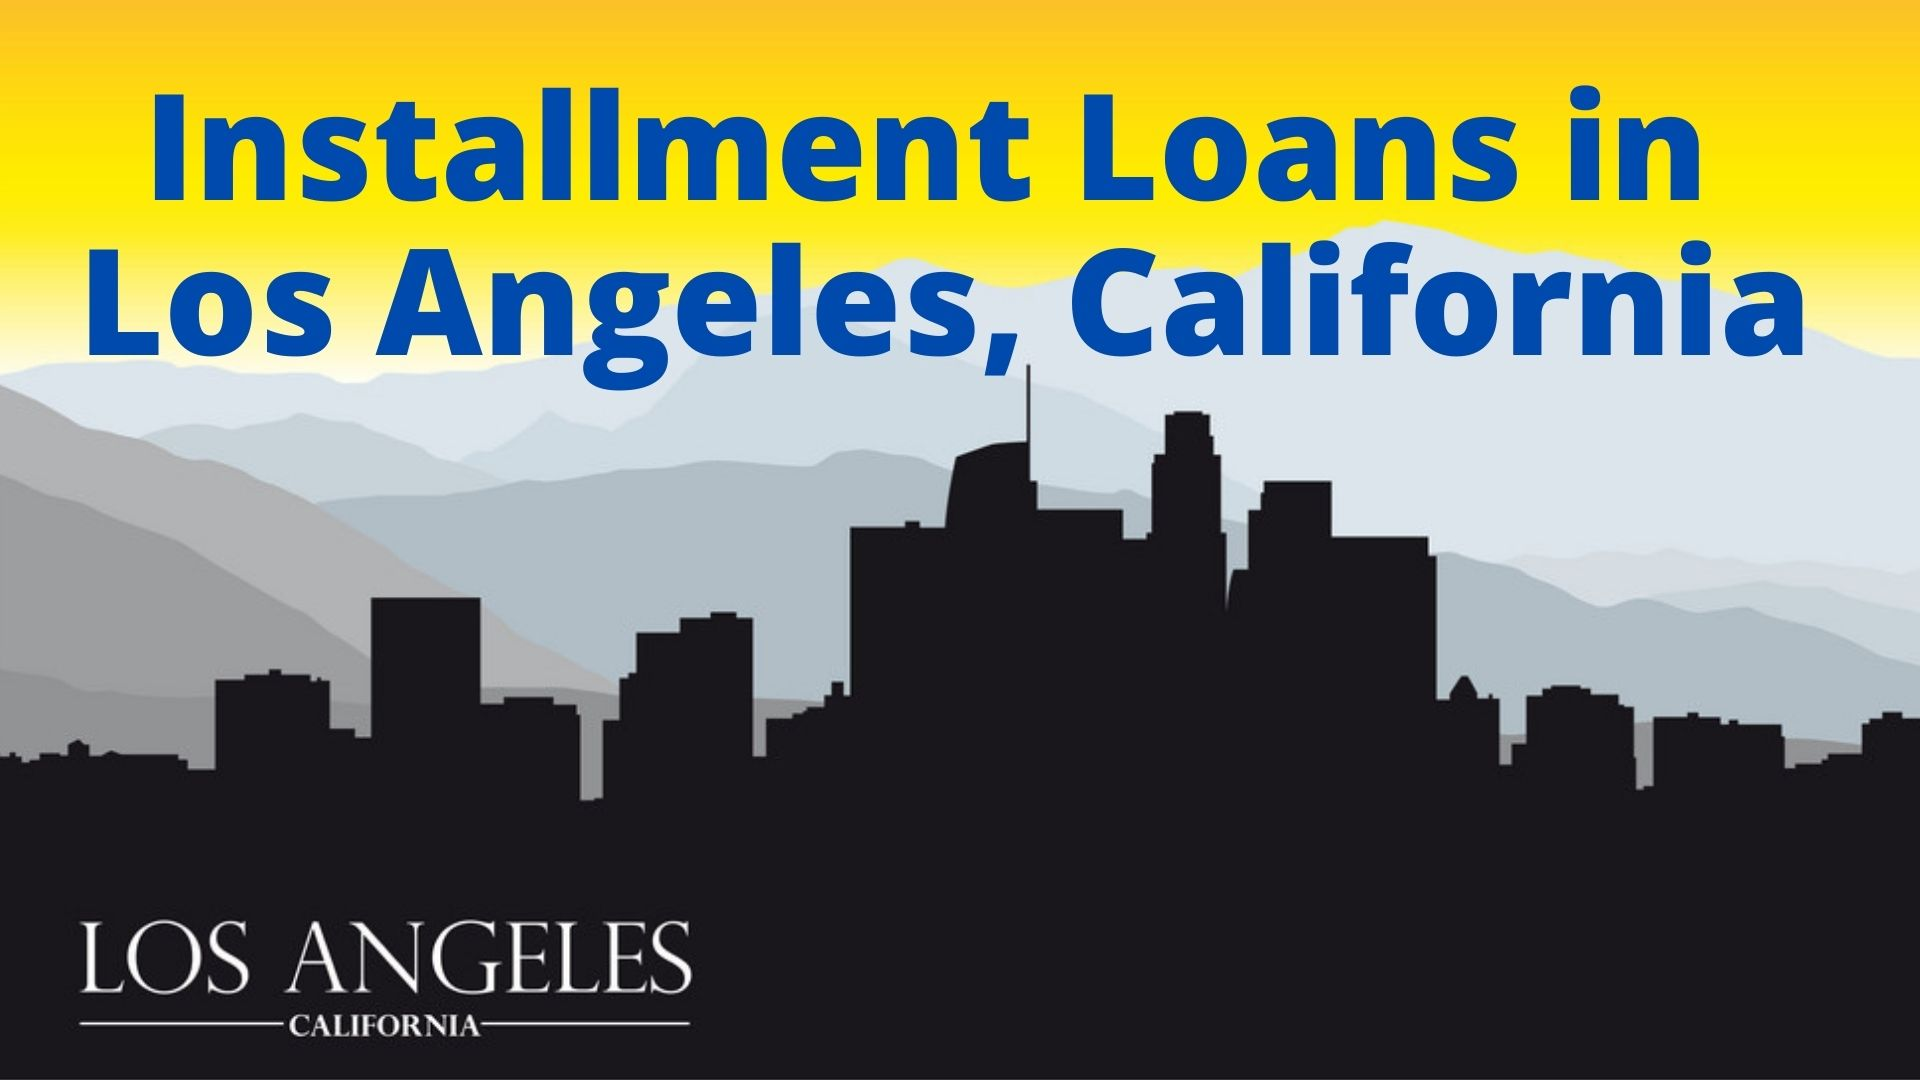 The regulations and costs for Los Angeles, CA Installment Loans